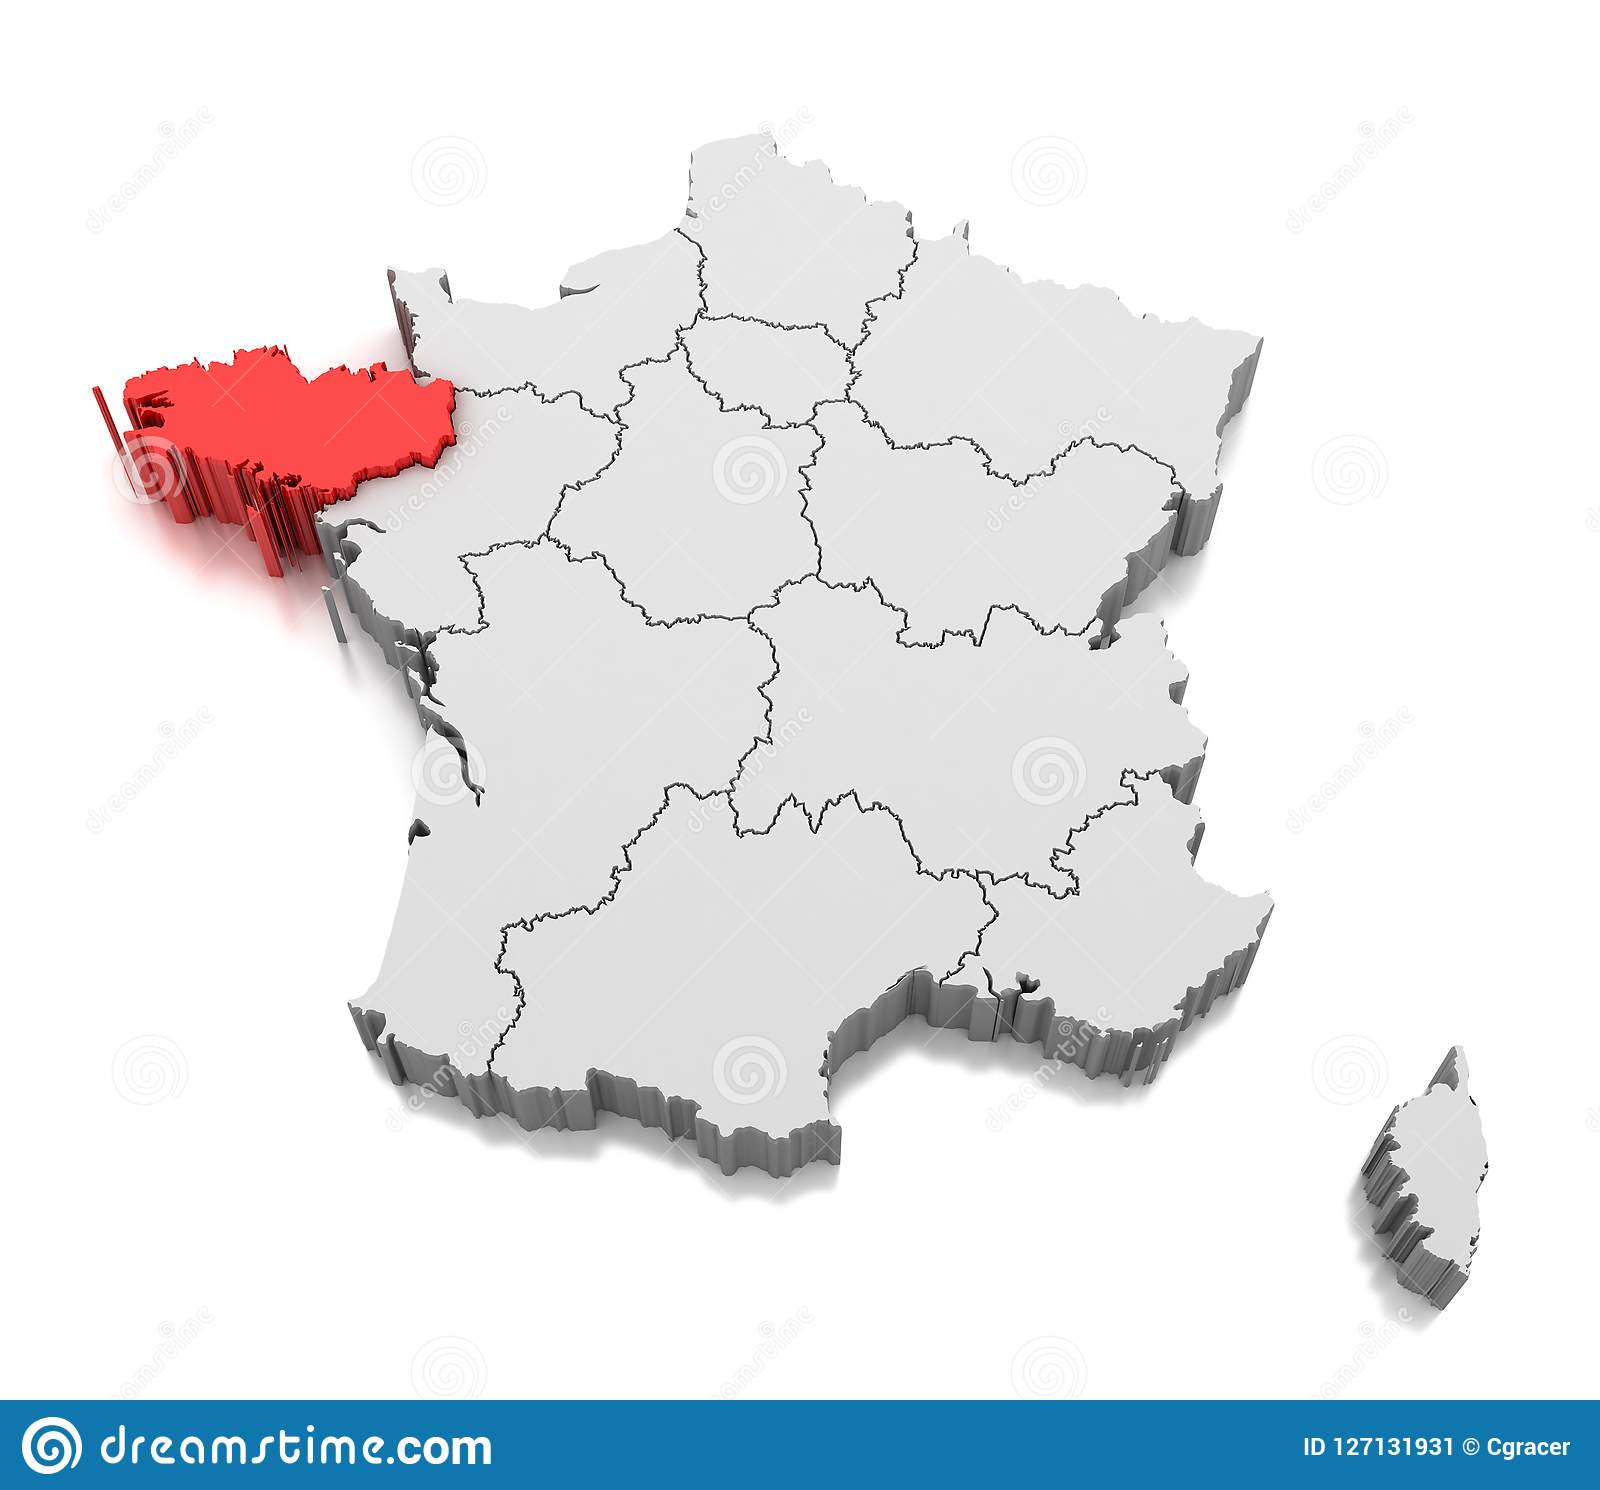 Brittany On Map Of France.Map Of Brittany Region France Stock Illustration Illustration Of